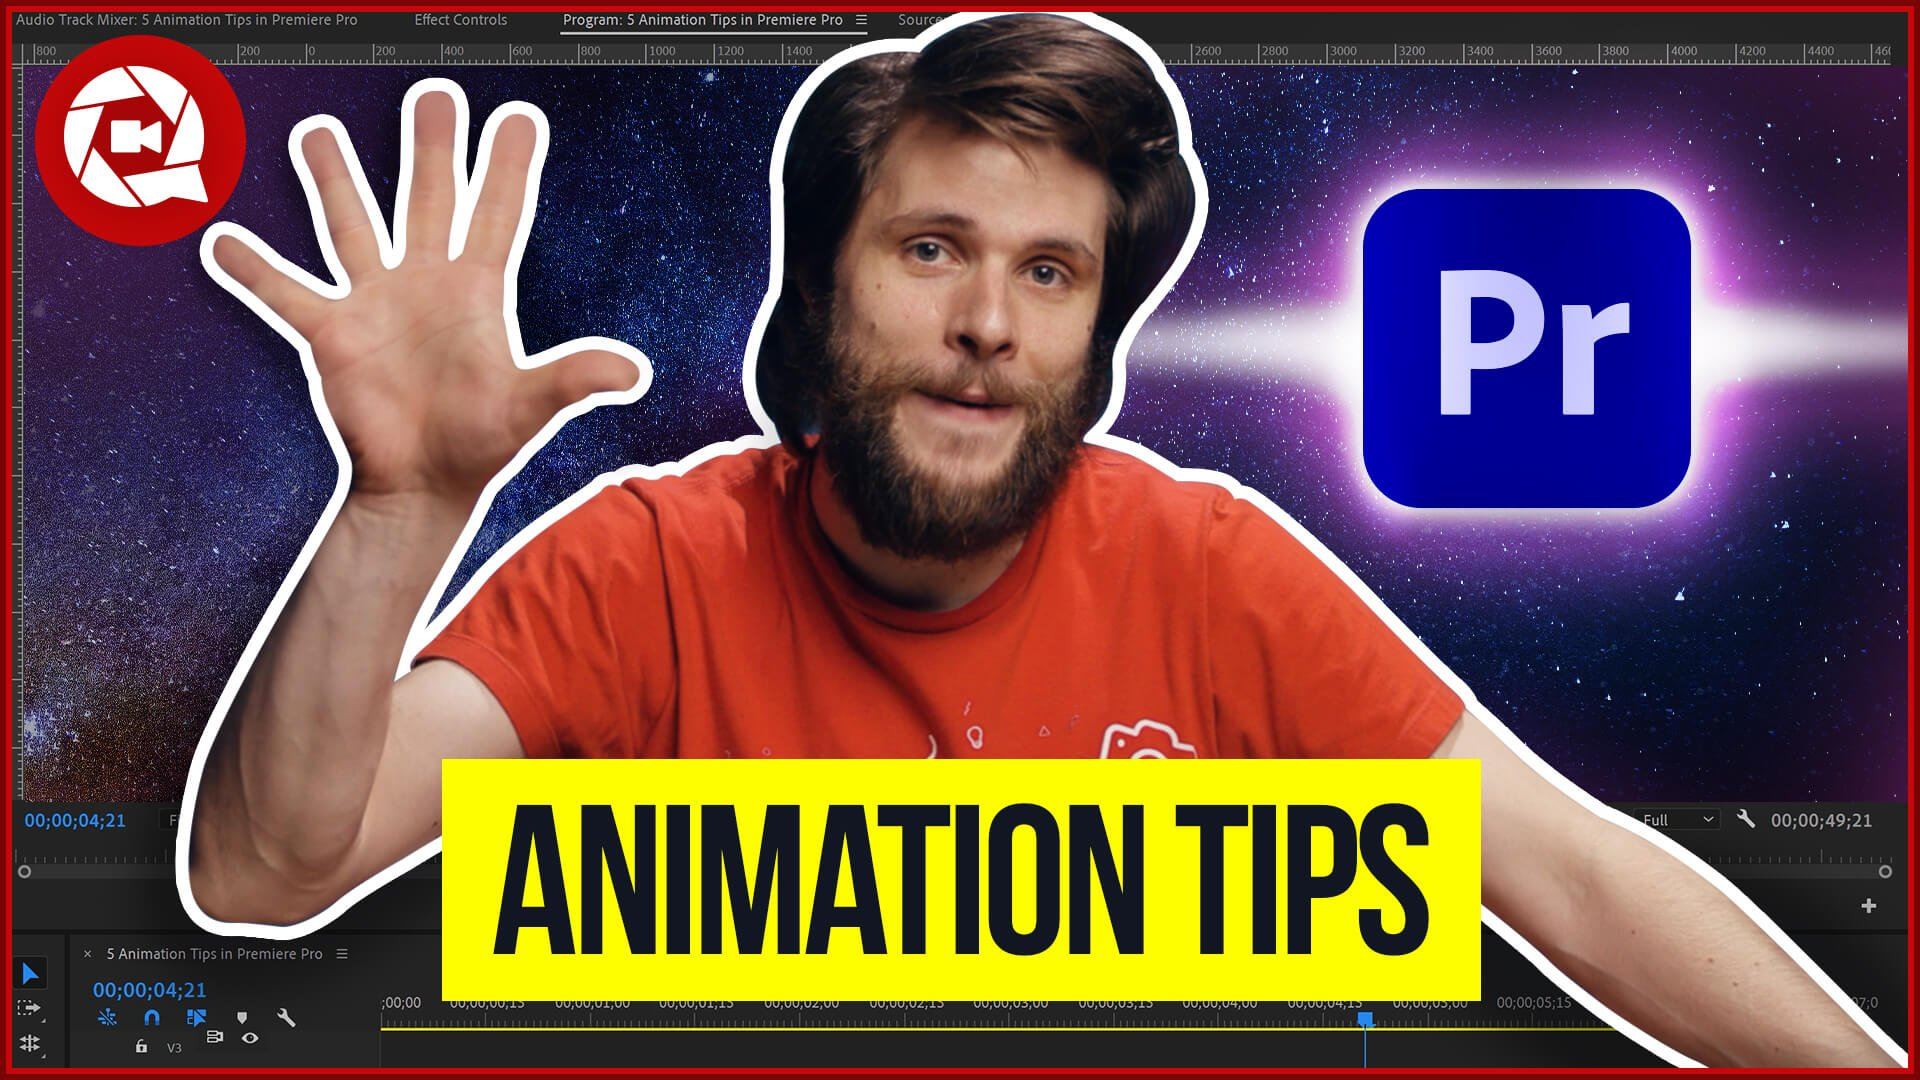 5 Animation Tips in Premiere Pro